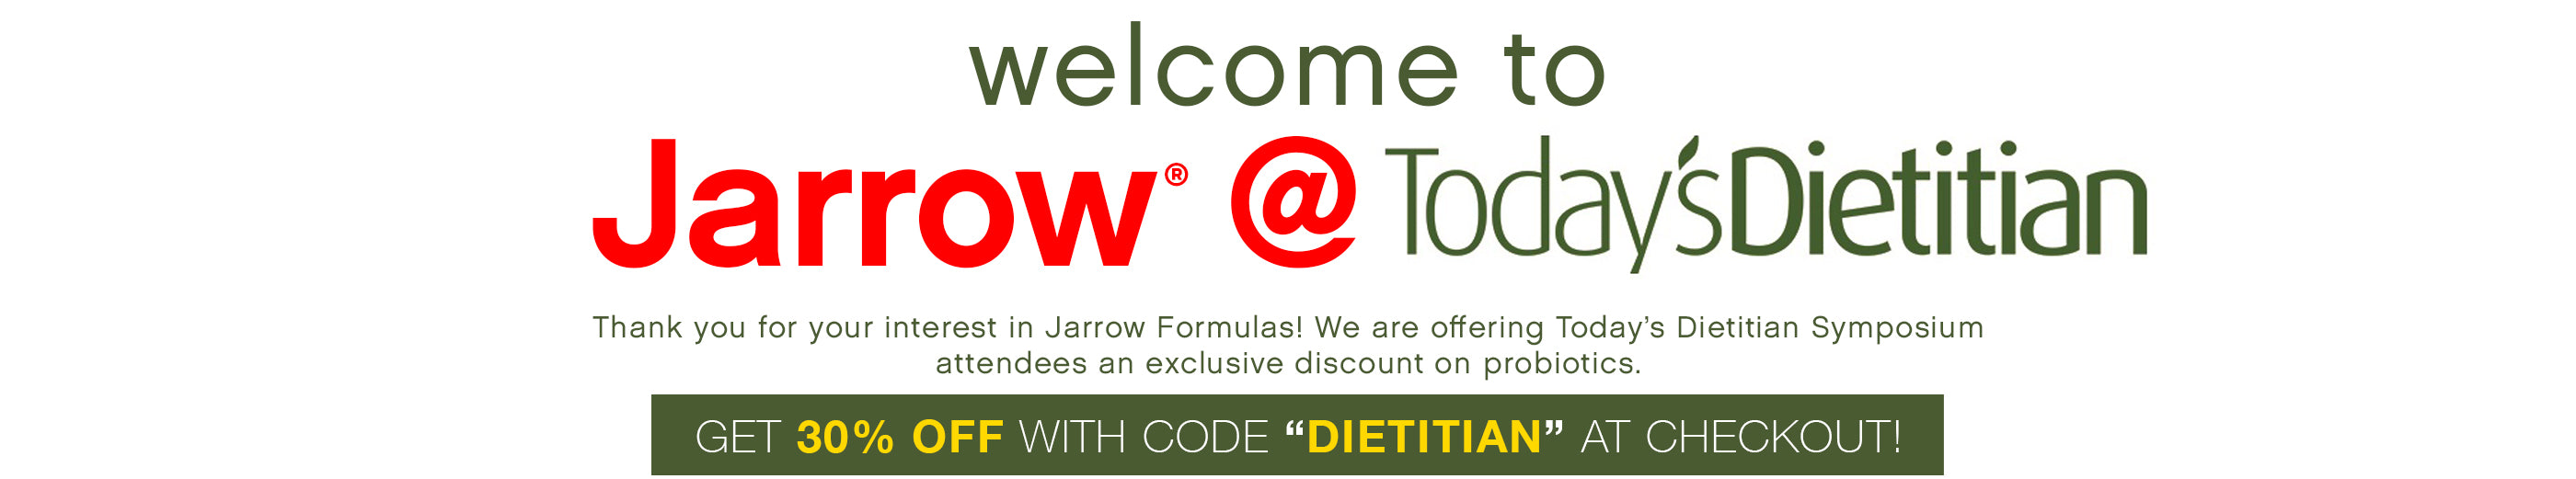 Today's Dietitian header image